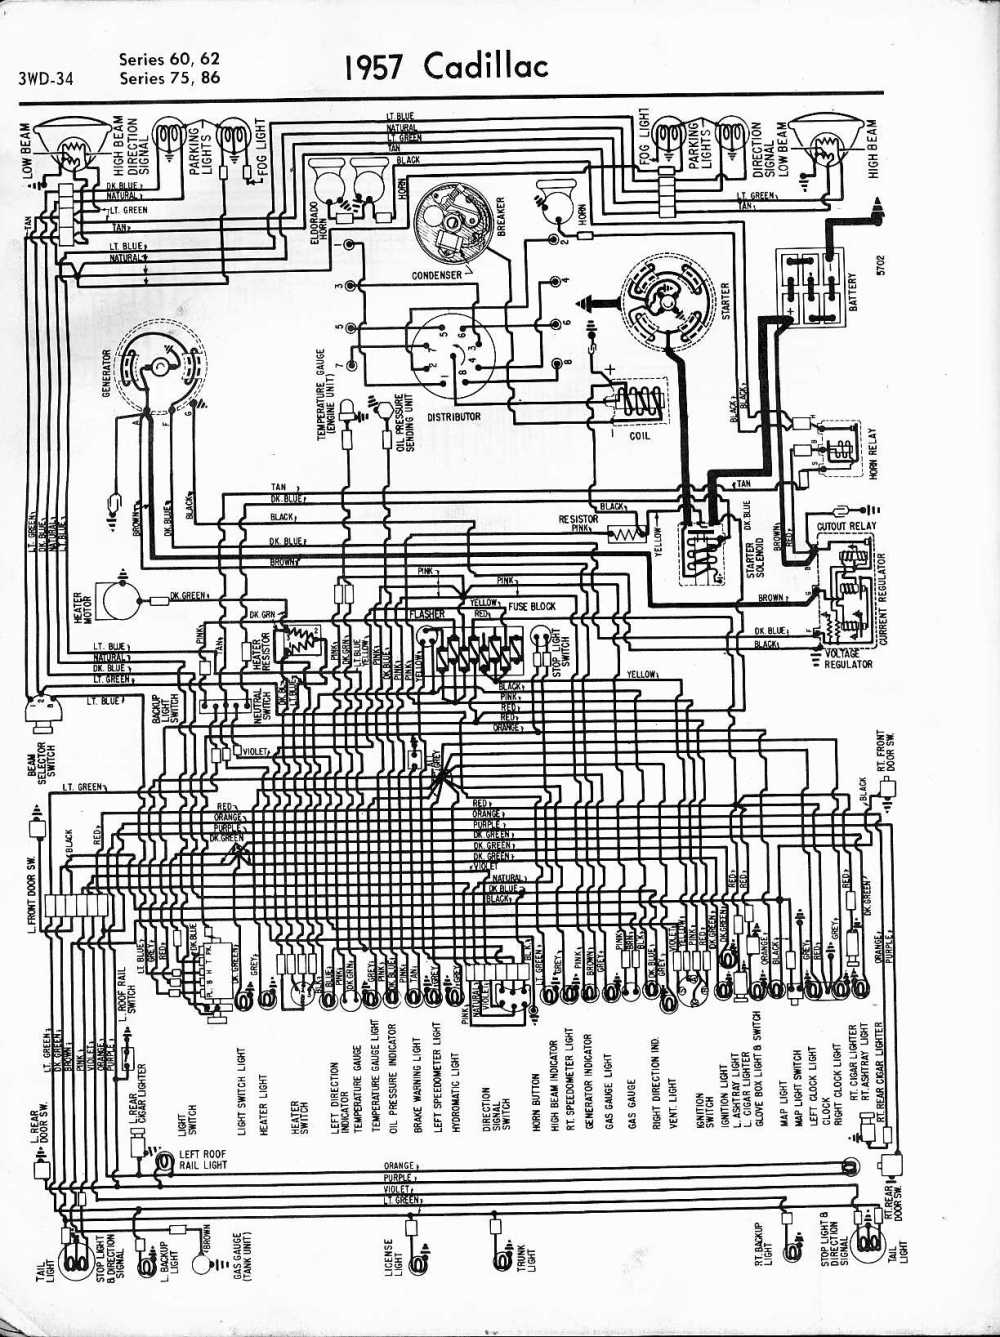 medium resolution of 1969 cadillac wiring diagram wiring diagram list 1969 cadillac wiring diagram 1969 cadillac wiring diagram